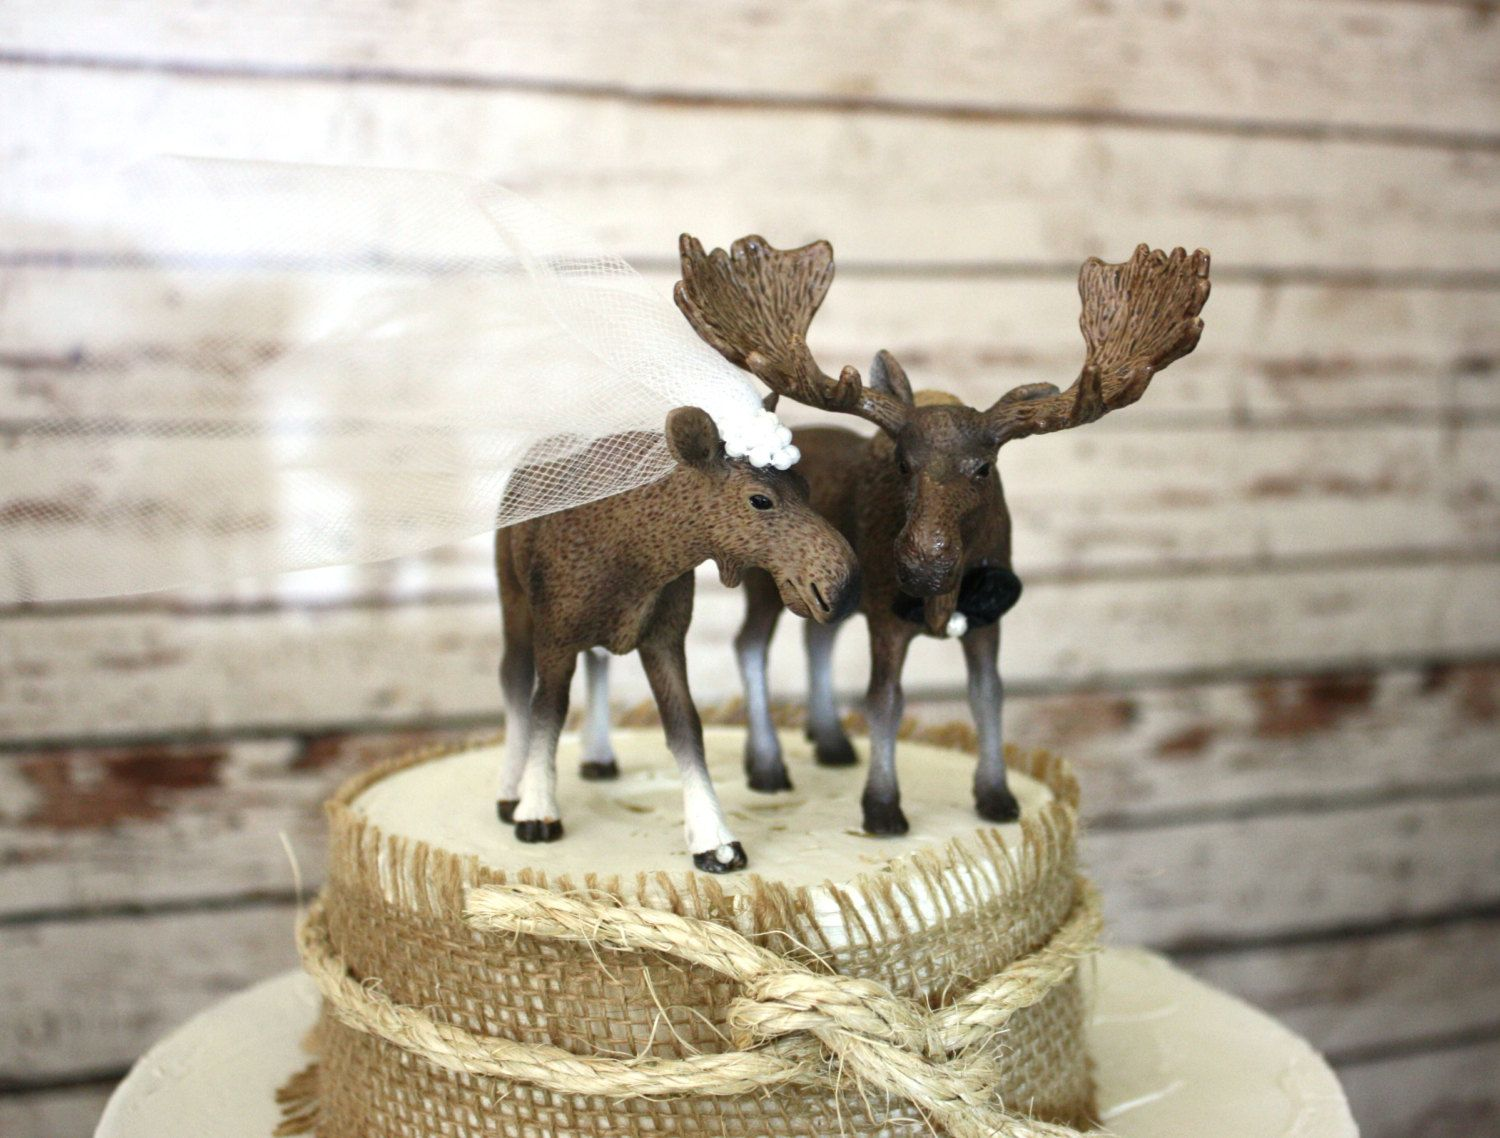 Moose wedding cake topper-Alaskan Moose-Moose cake topper-Rustic Cake topper-Hunting cake topper. $55.00, via Etsy.